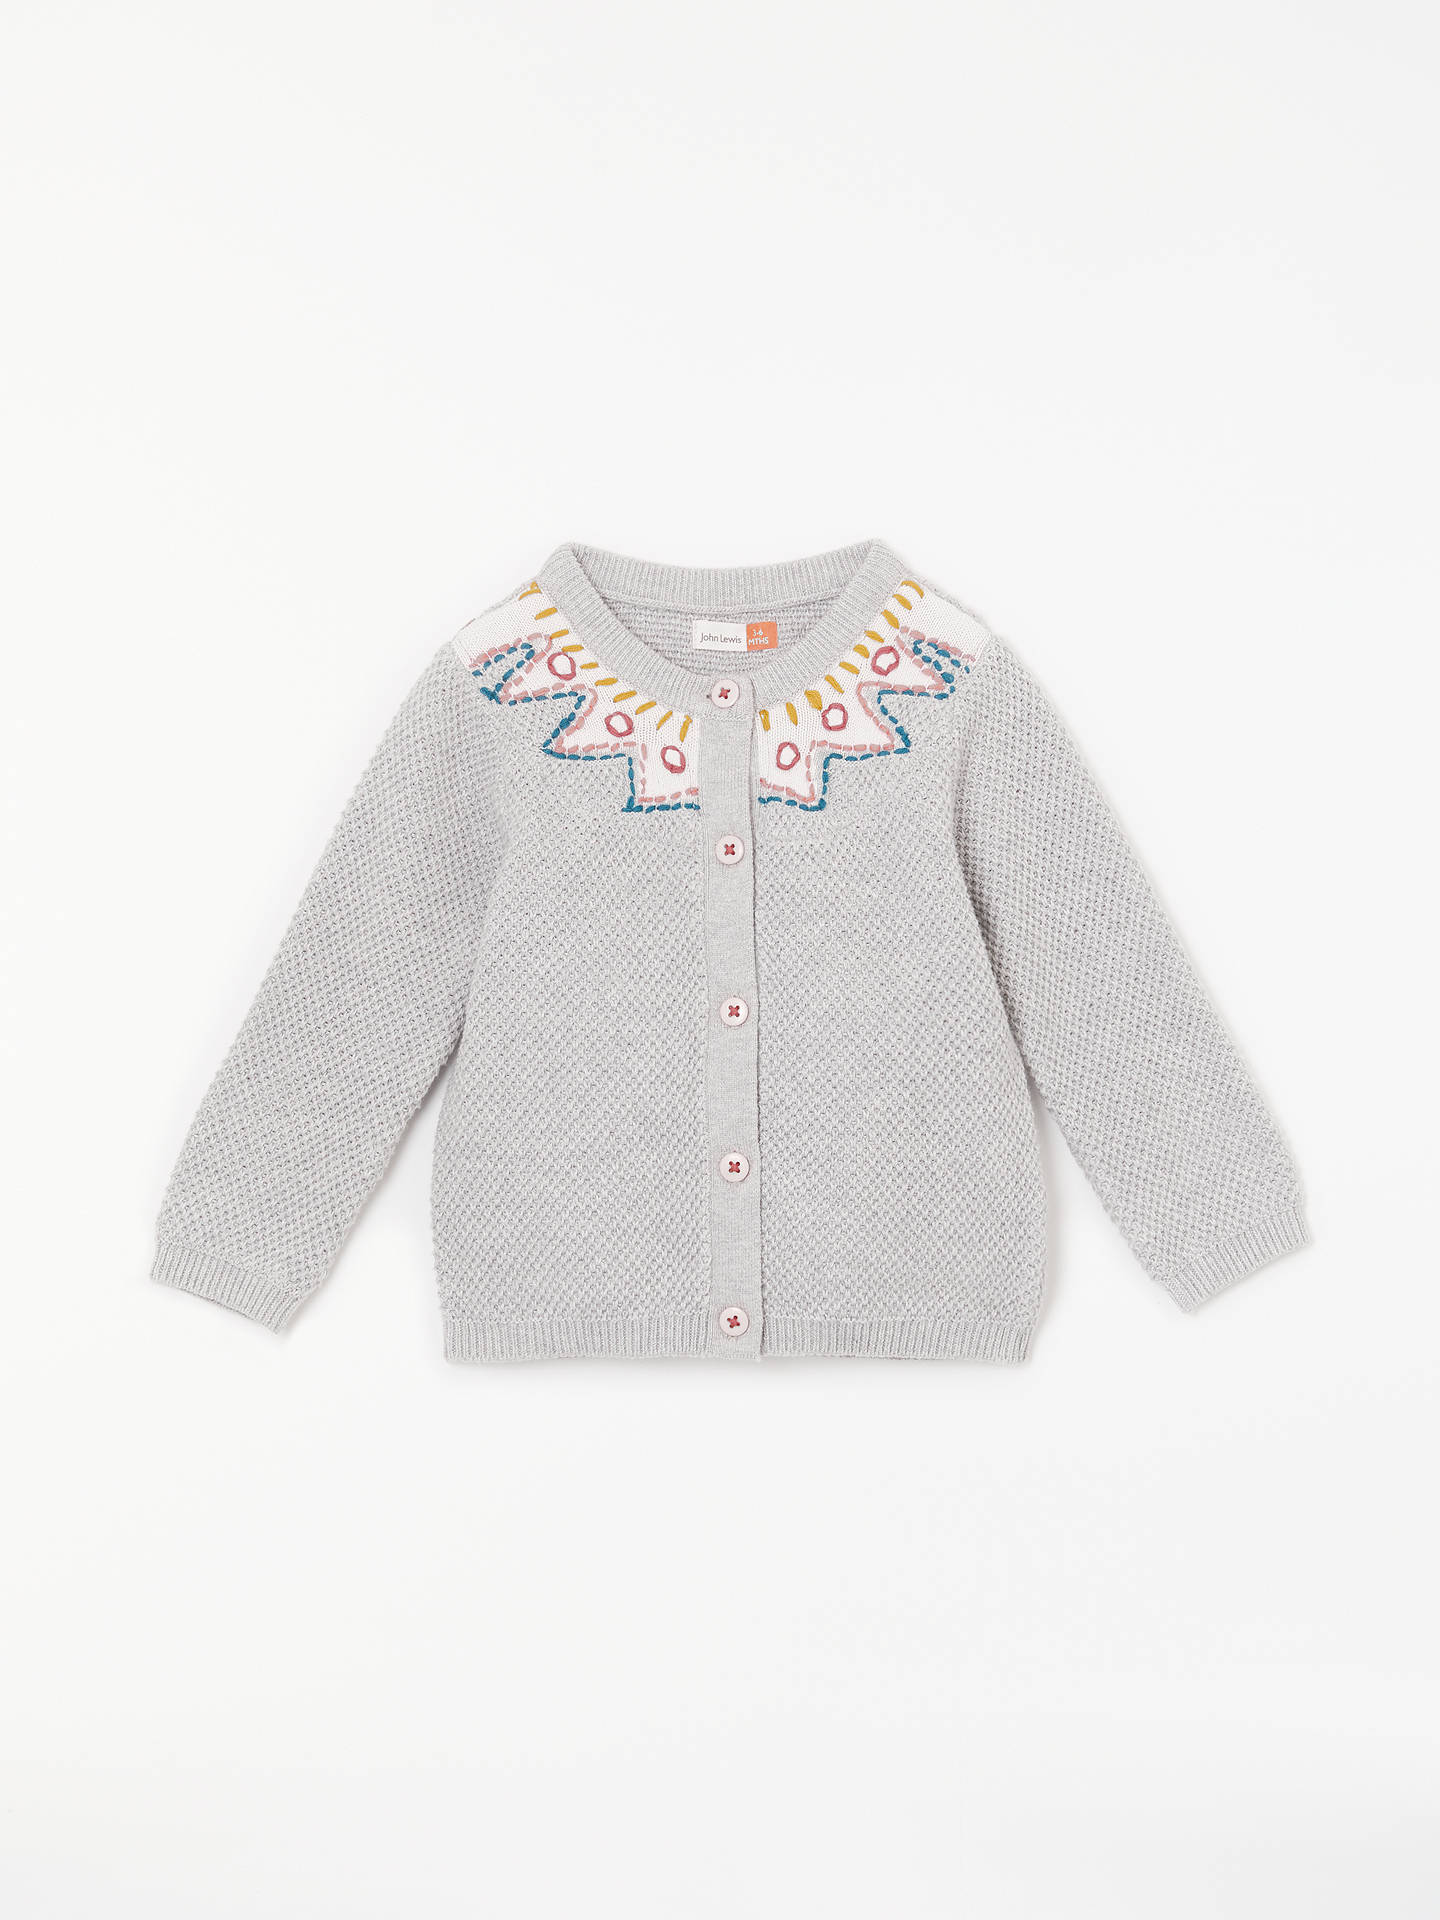 36d74a86f John Lewis   Partners Baby Embroidery Cardigan